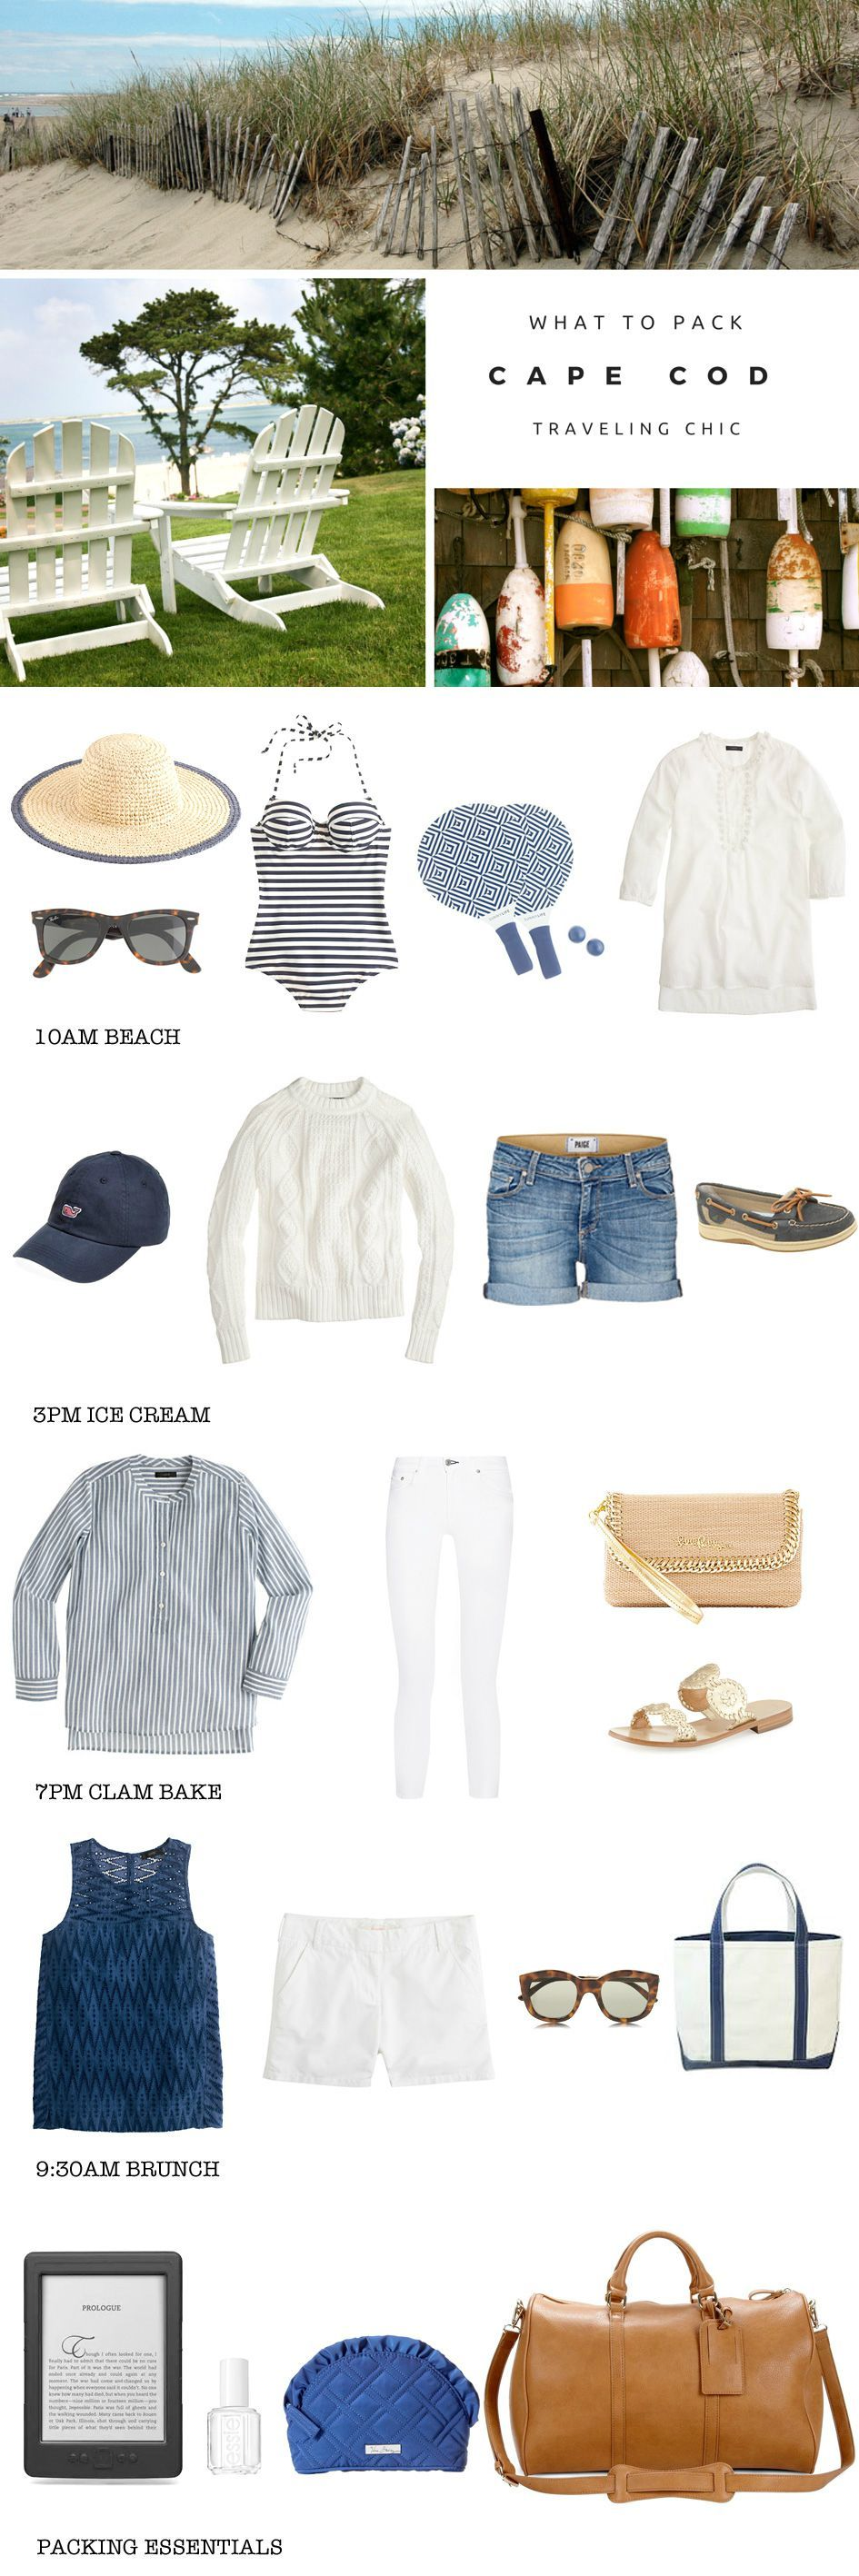 What To Pack For Cape Cod Traveling Chic Fashion Travel Chic Preppy Style